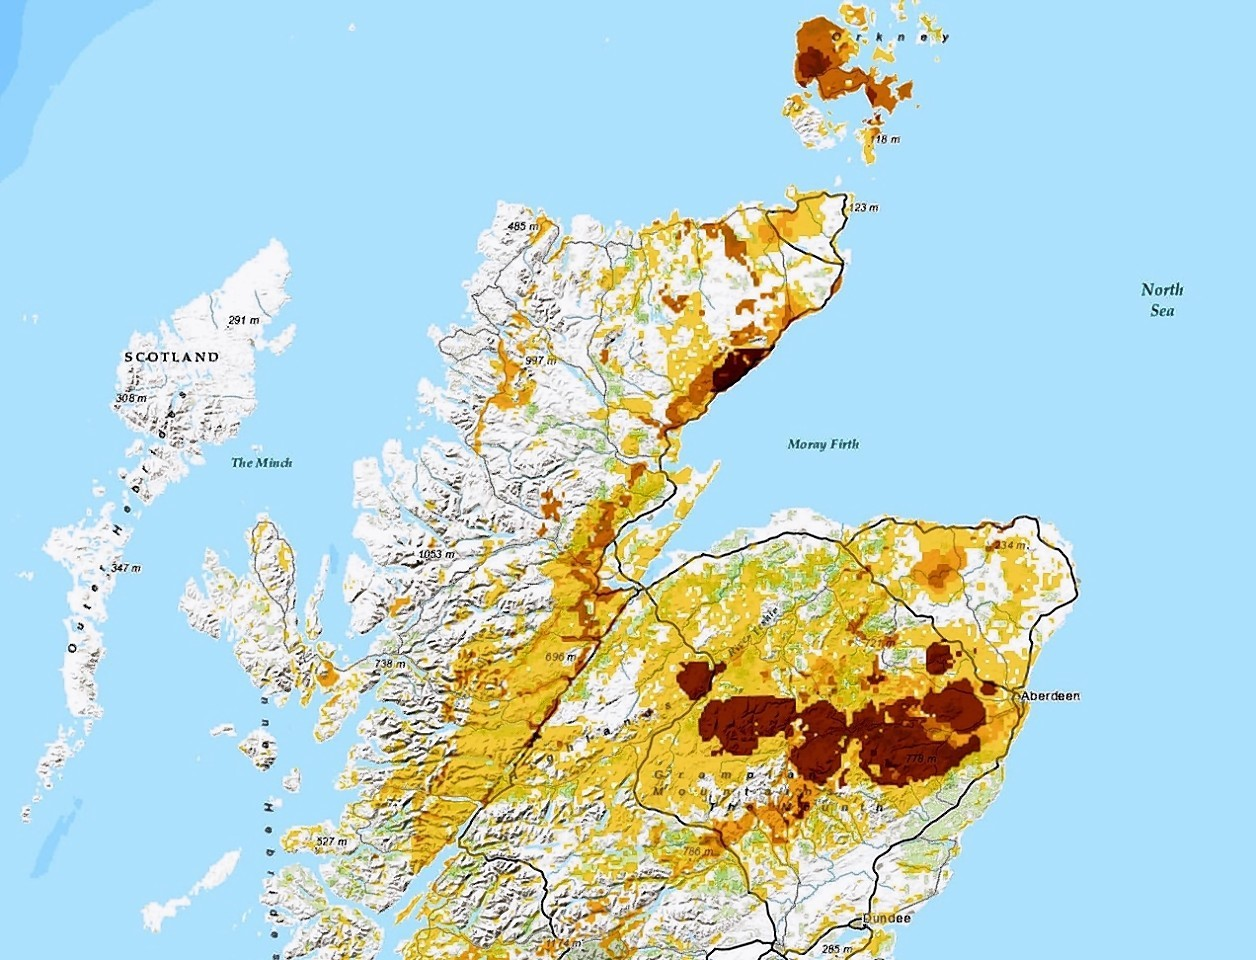 Radon Gas hot spots map in the north of Scotland